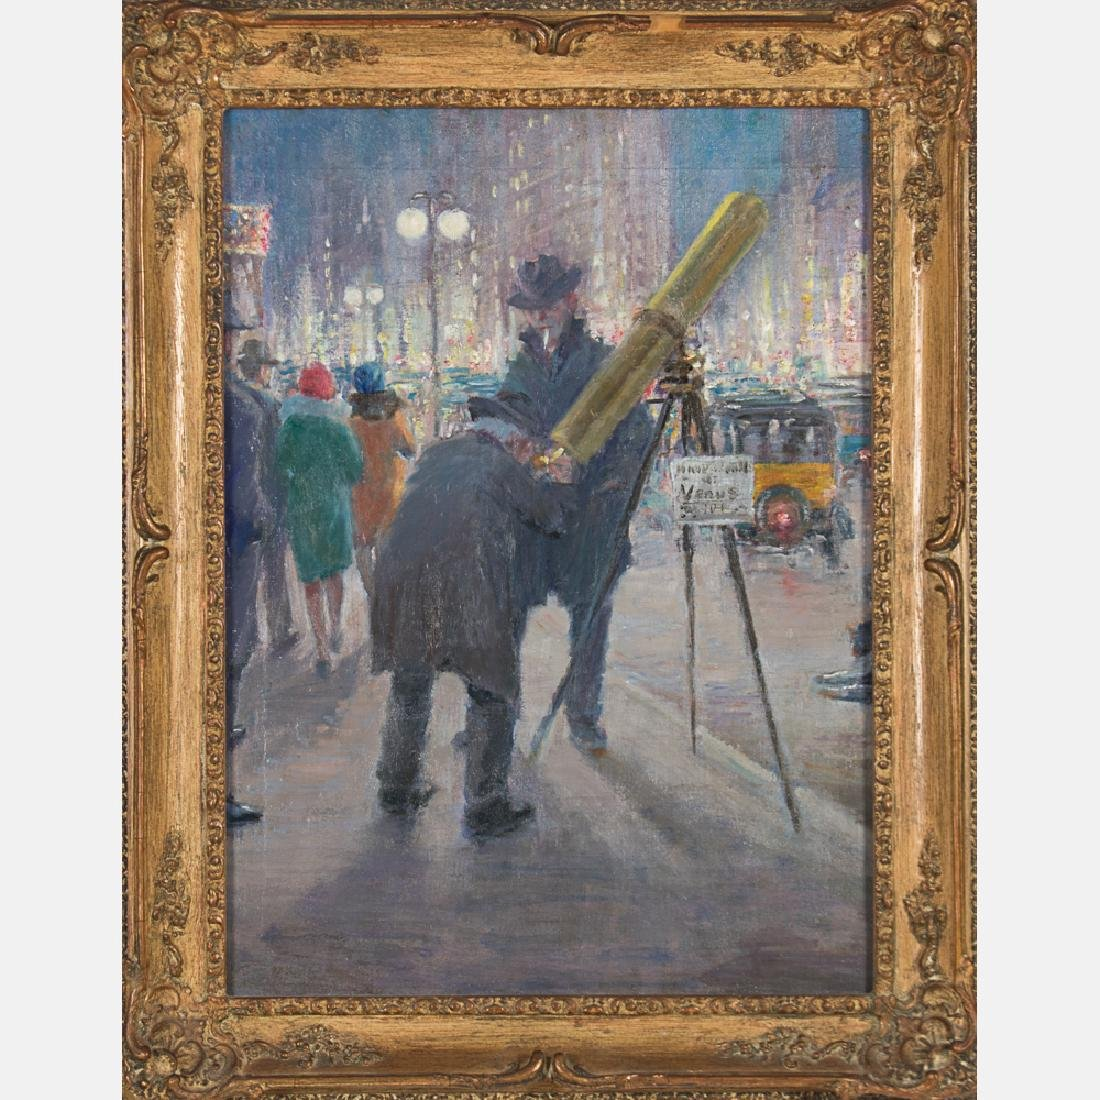 Ashcan School (Early 20th Century) New York Scene, Oil